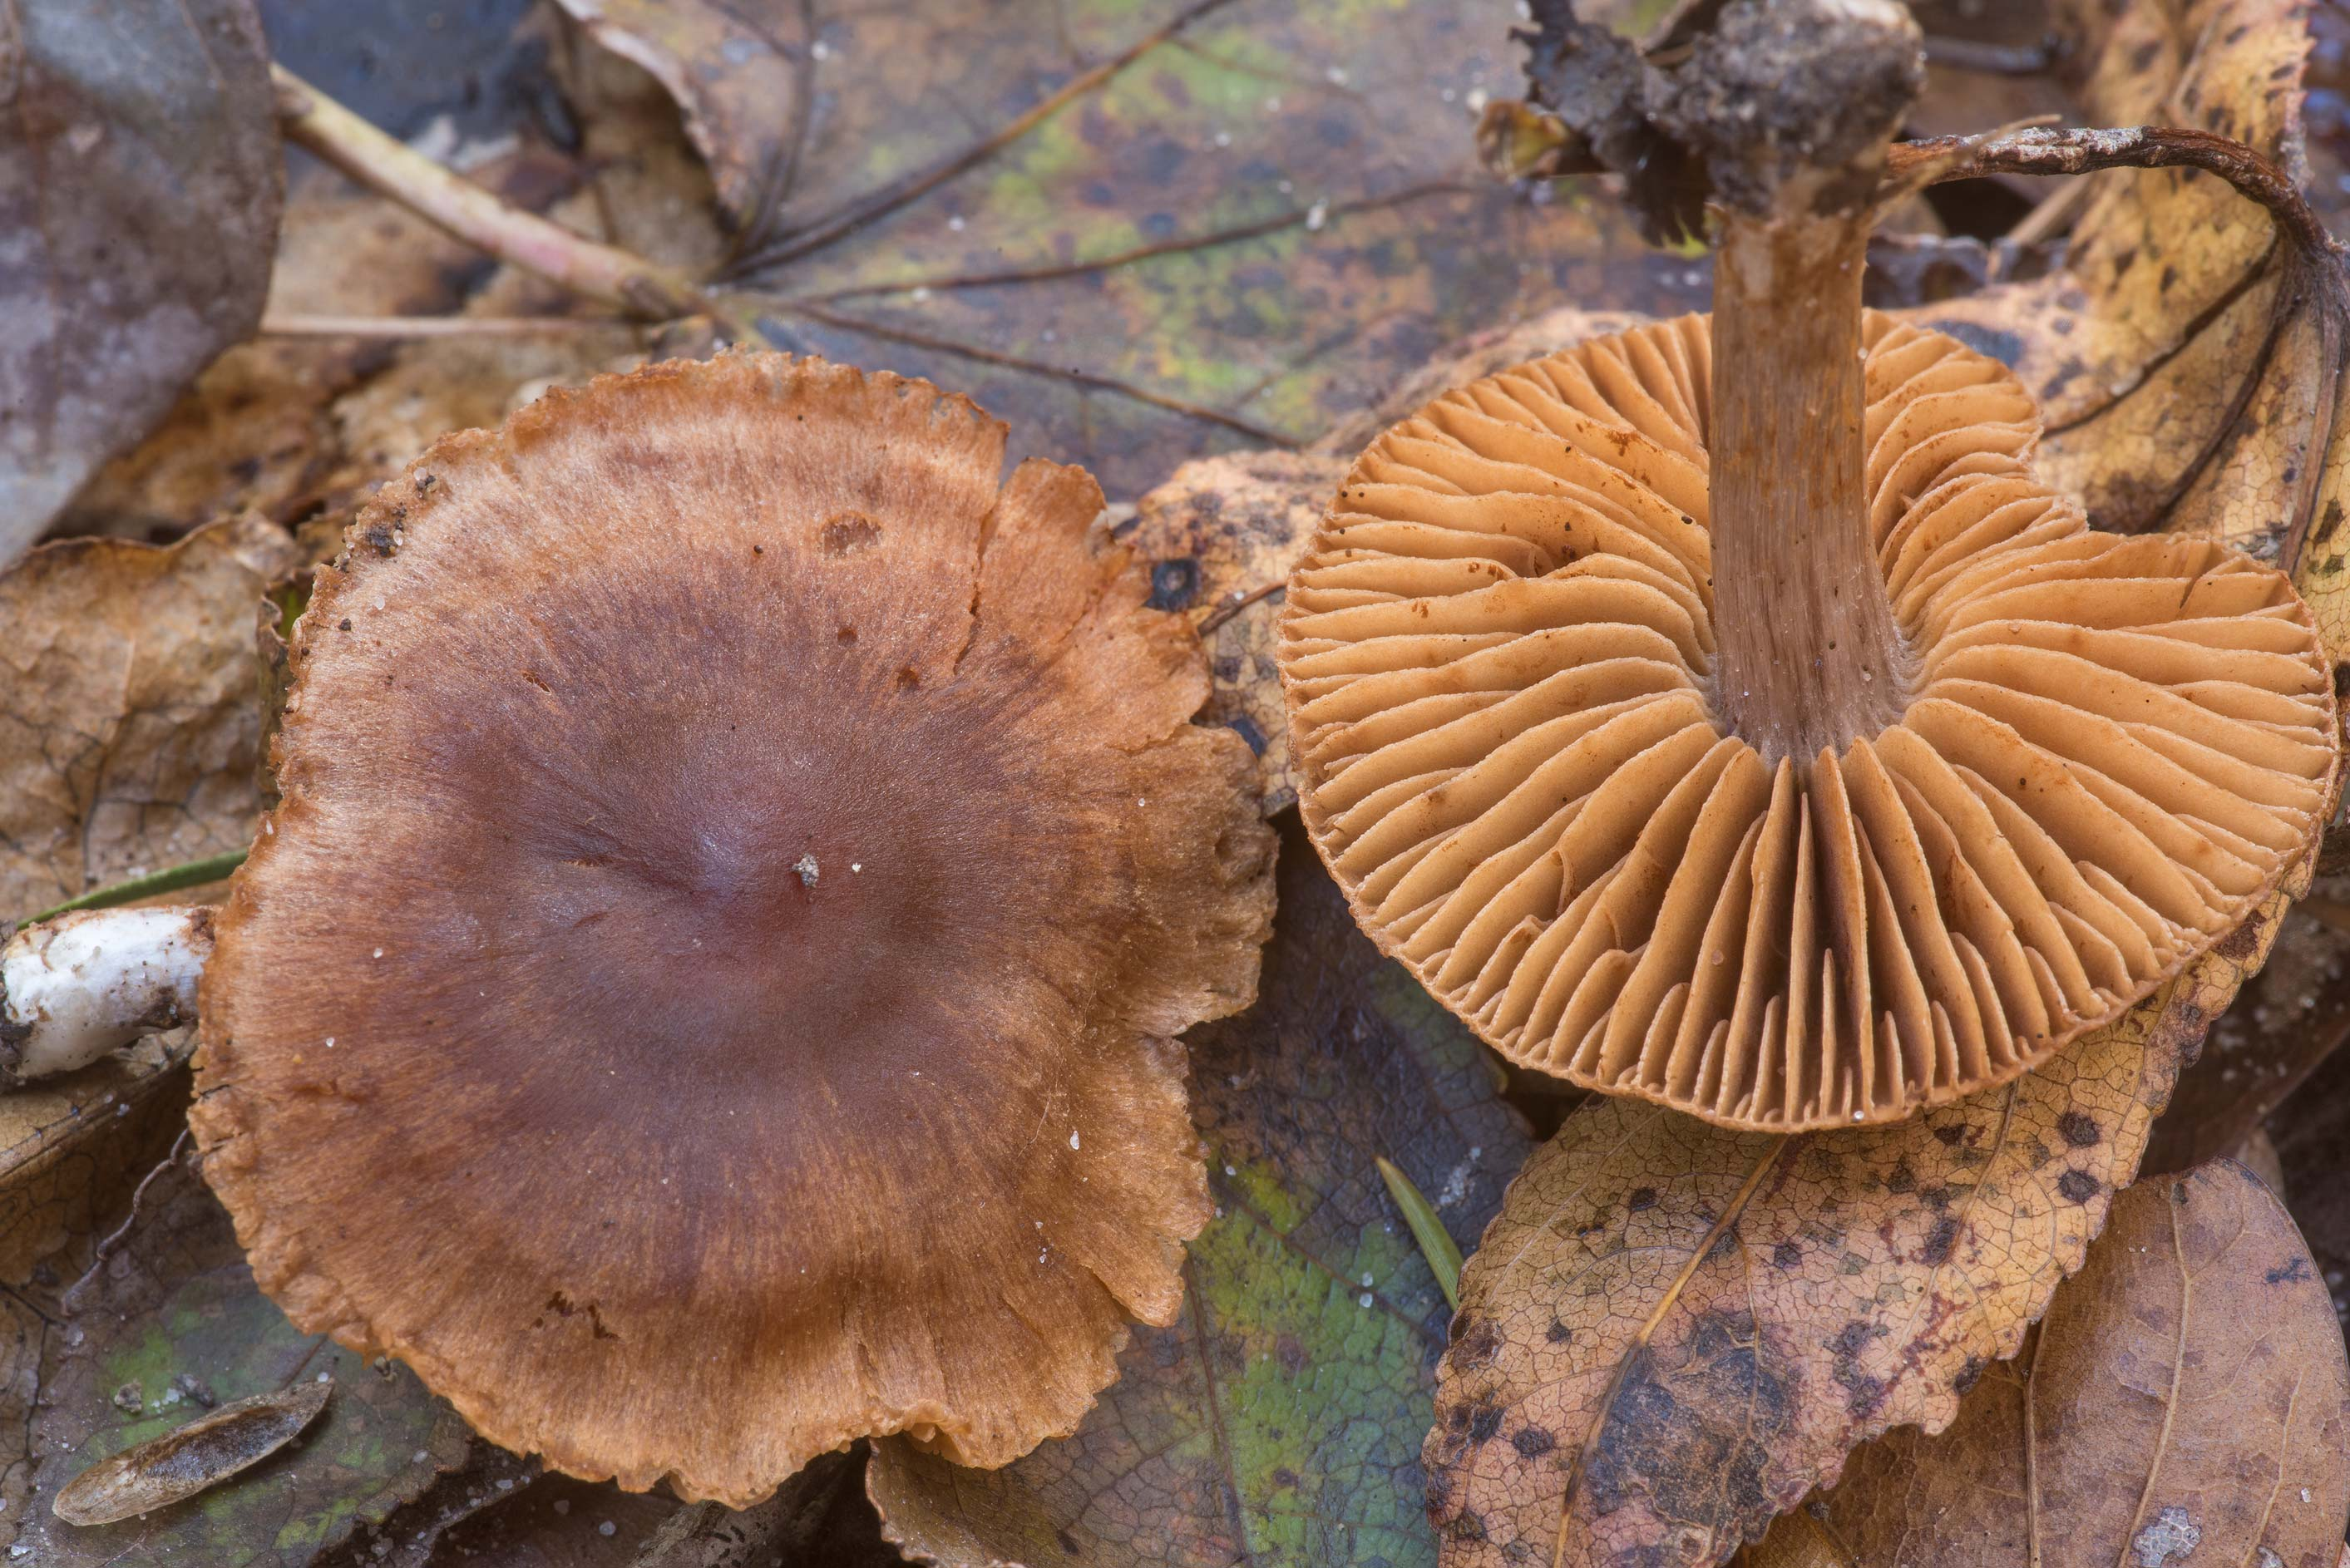 Some brown webcap (Cortinarius) mushrooms in a...National Forest. Cleveland, Texas